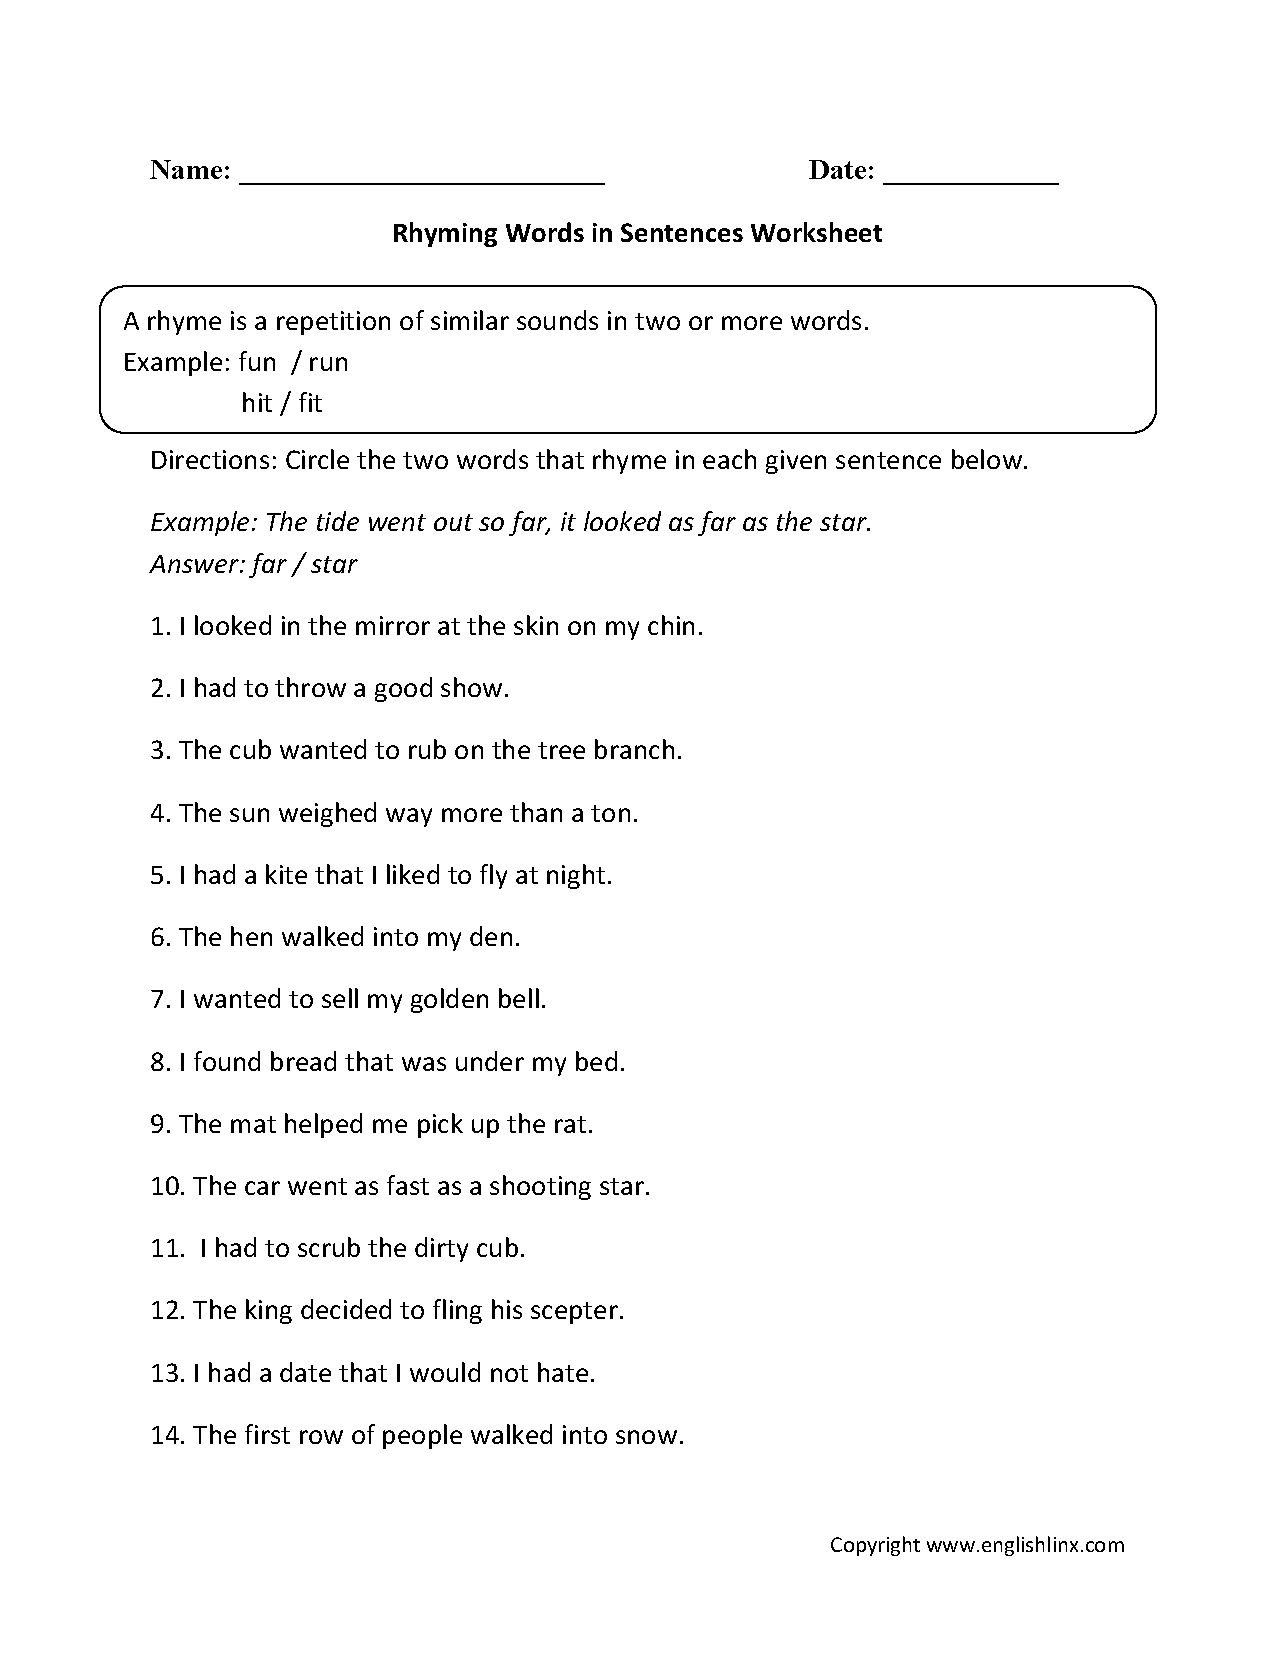 Worksheets Example Of Rhyming Words In Sentence englishlinx com rhyming worksheets words in sentences worksheet